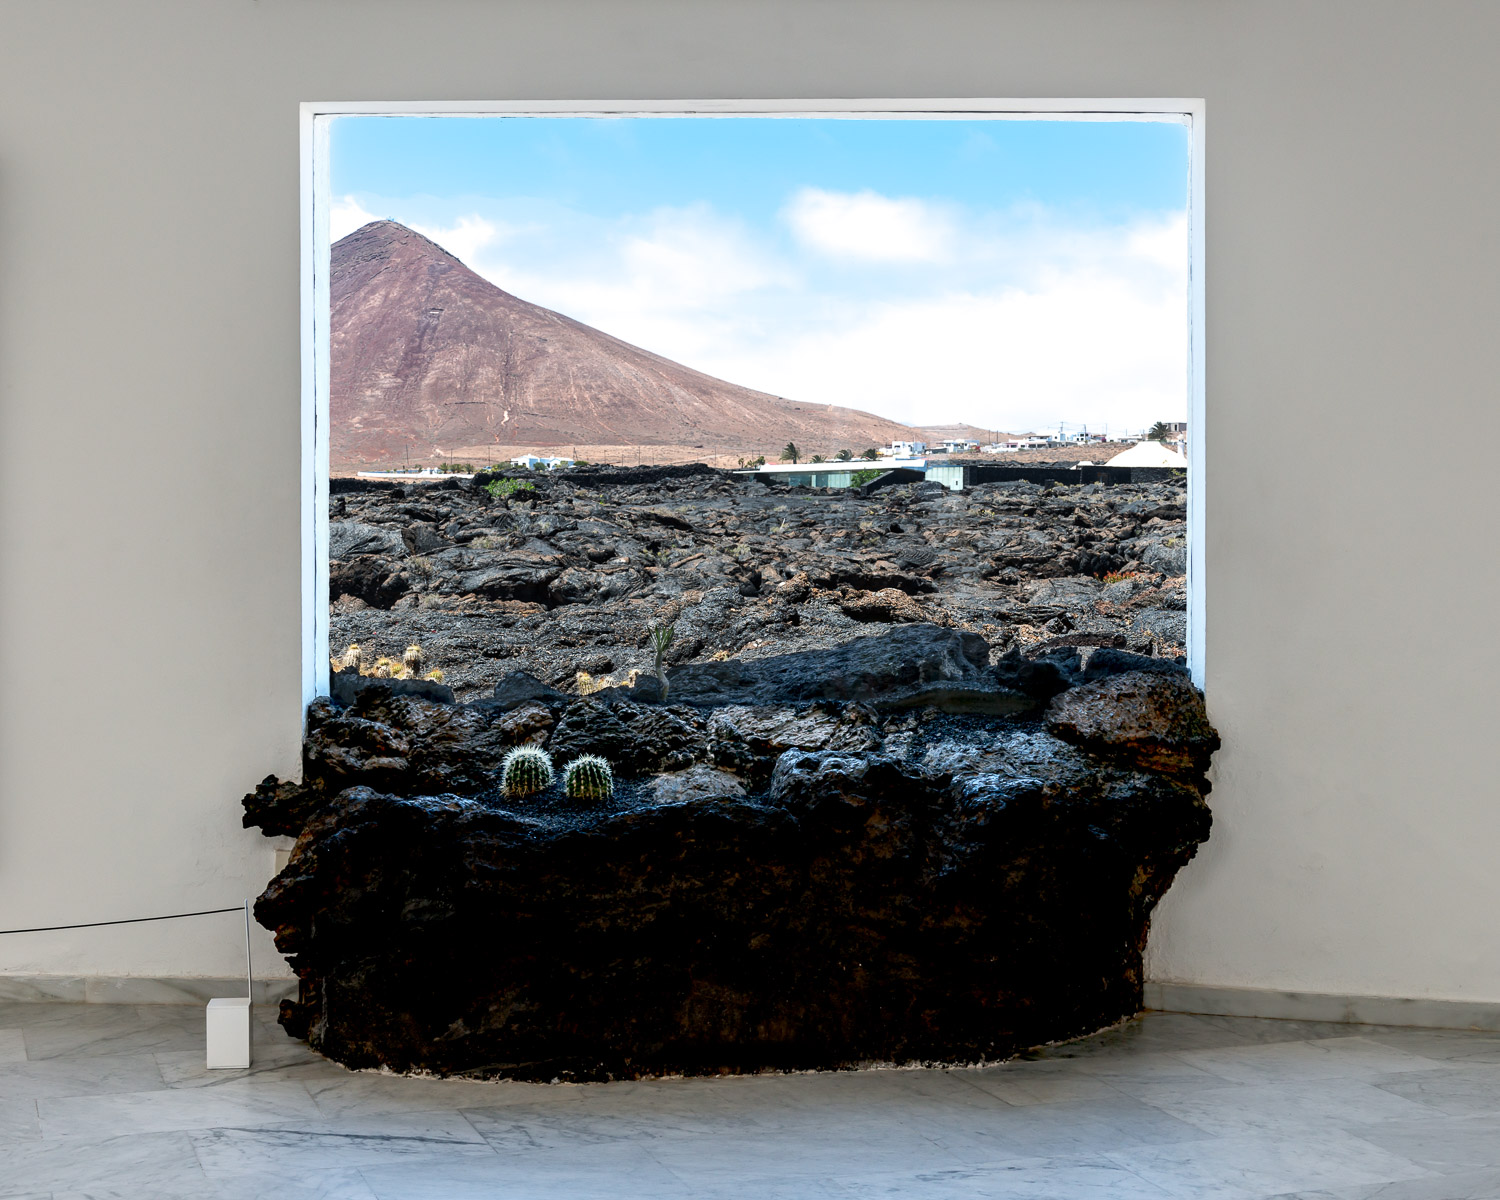 Taro de Tachiche (1968), the home of Cesar Manrique, Lanzarote